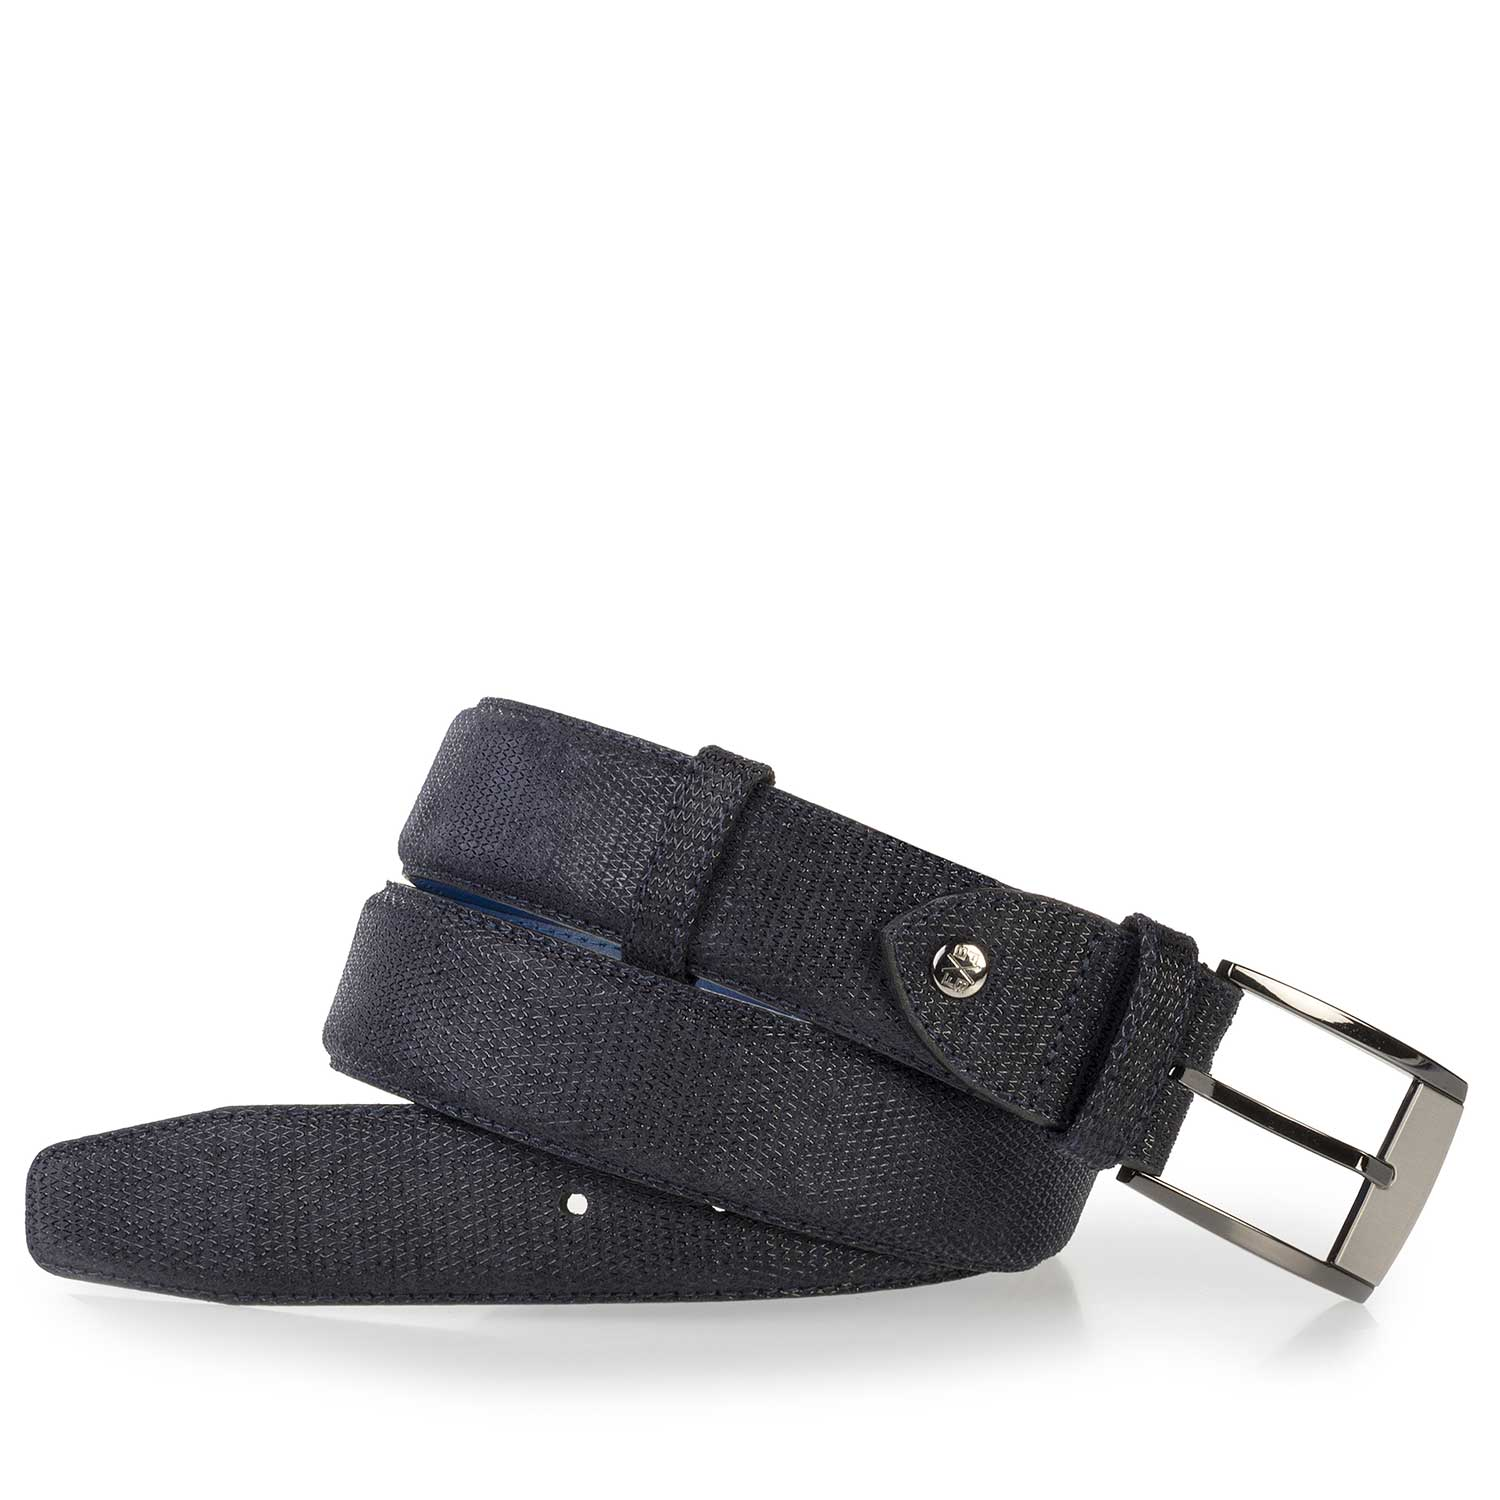 75180/22 - Blue suede leather belt with pattern